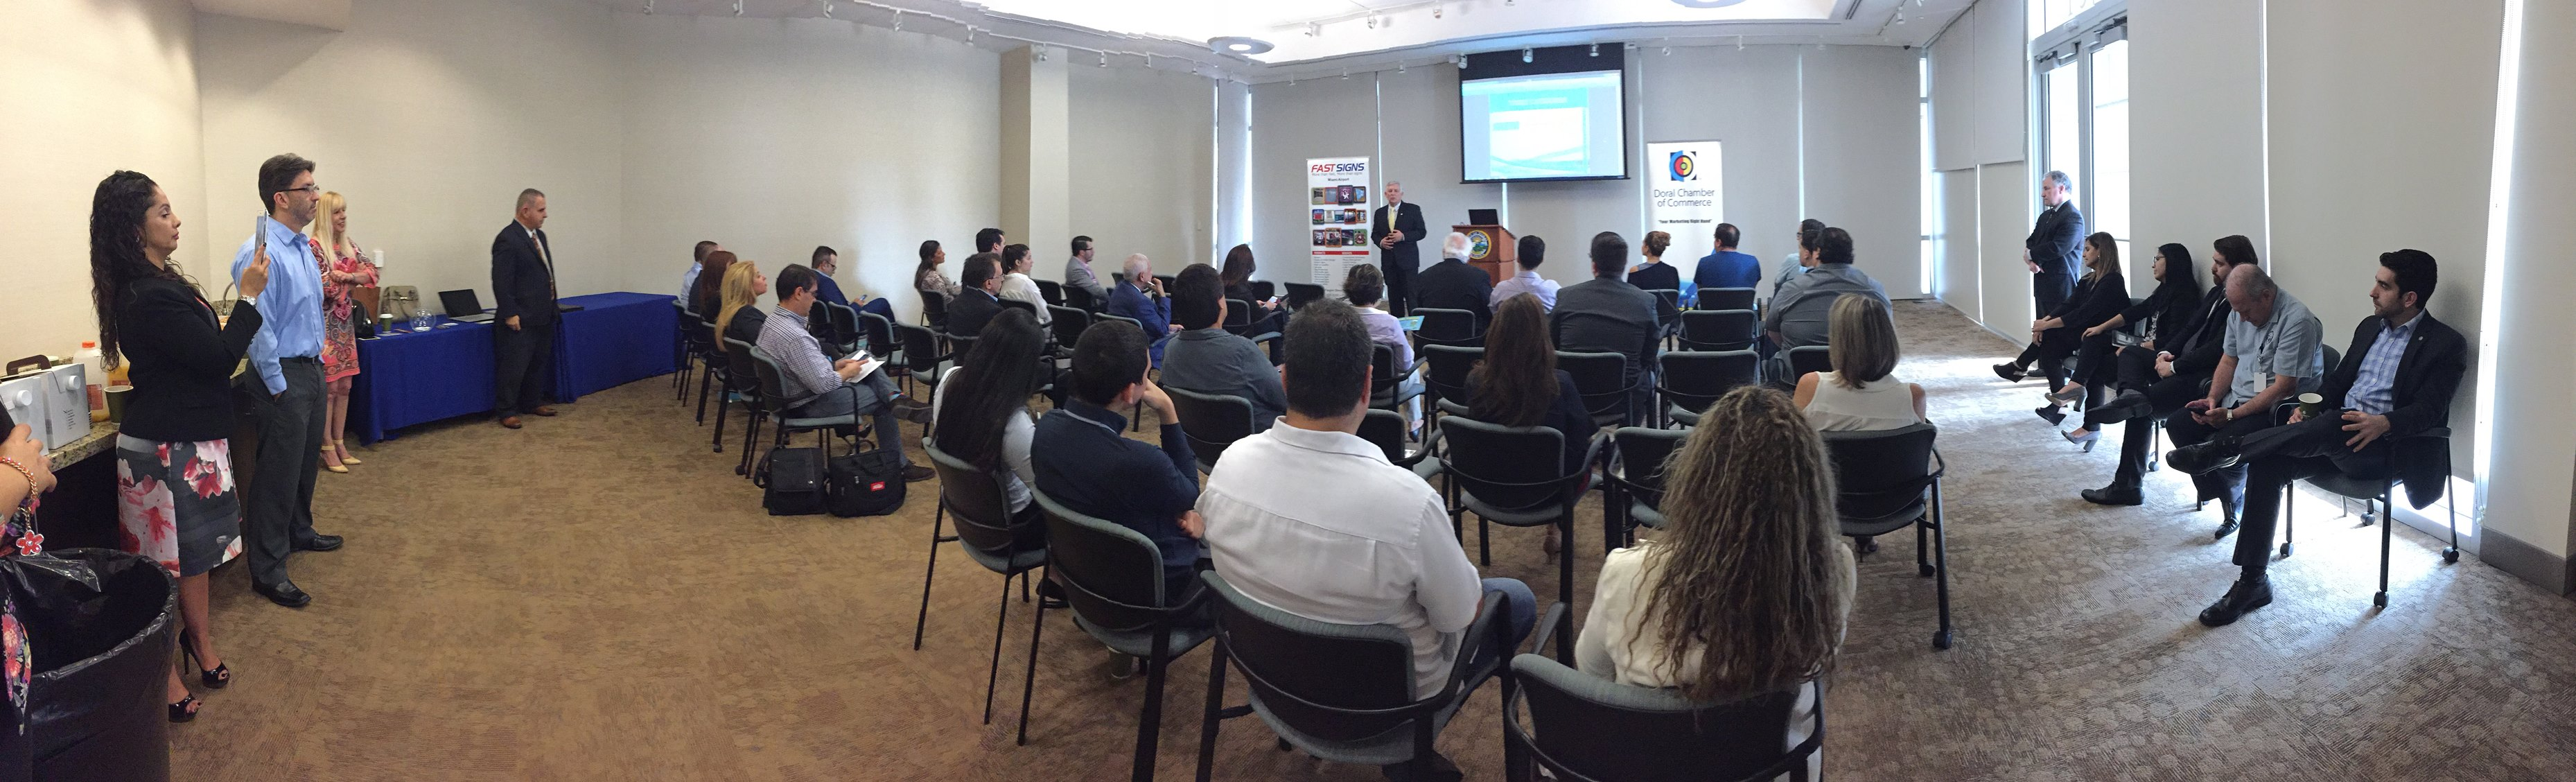 Startup Doral, a Doral Chamber of Commerce event whole room.